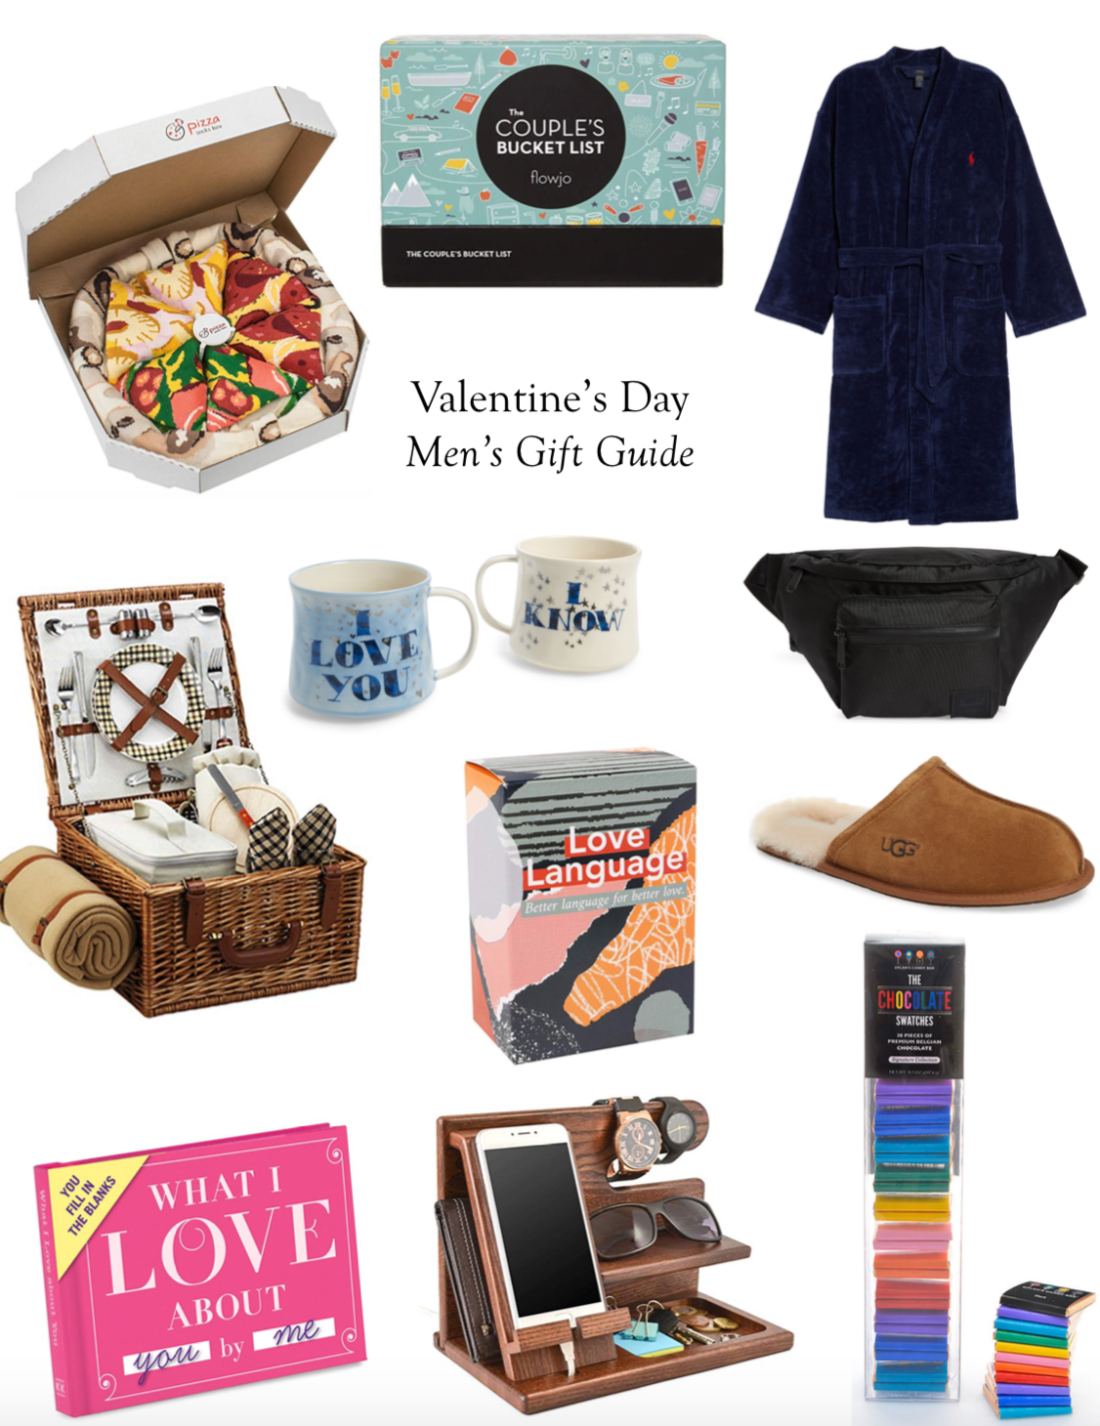 mens gift guide valentine's day